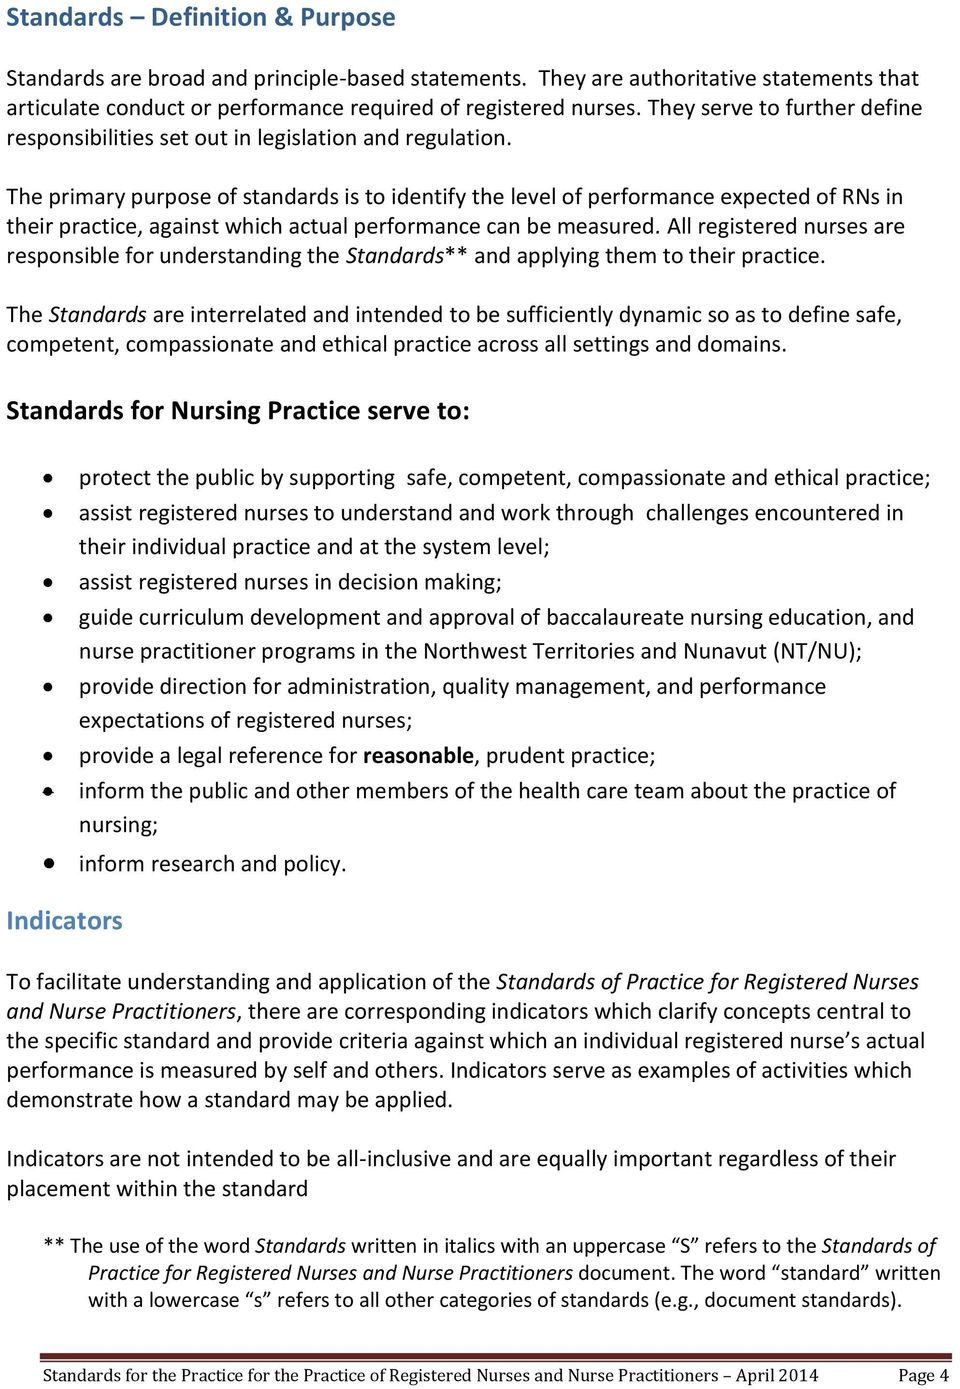 The primary purpose of standards is to identify the level of performance expected of RNs in their practice, against which actual performance can be measured.